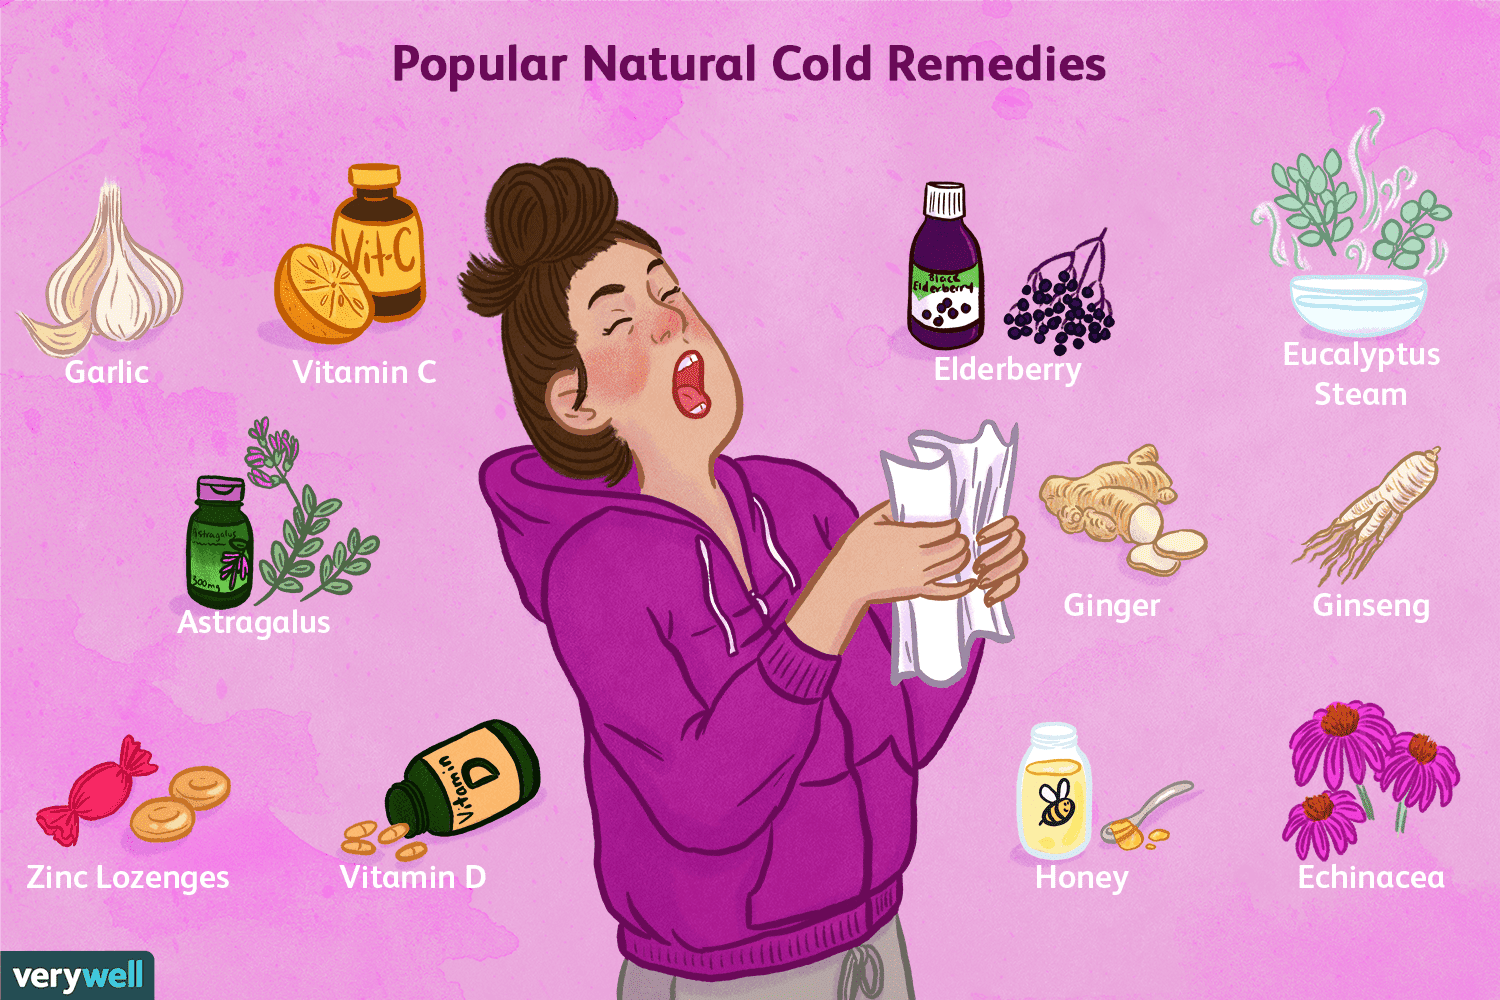 11 Popular Natural Remedies for the Common Cold